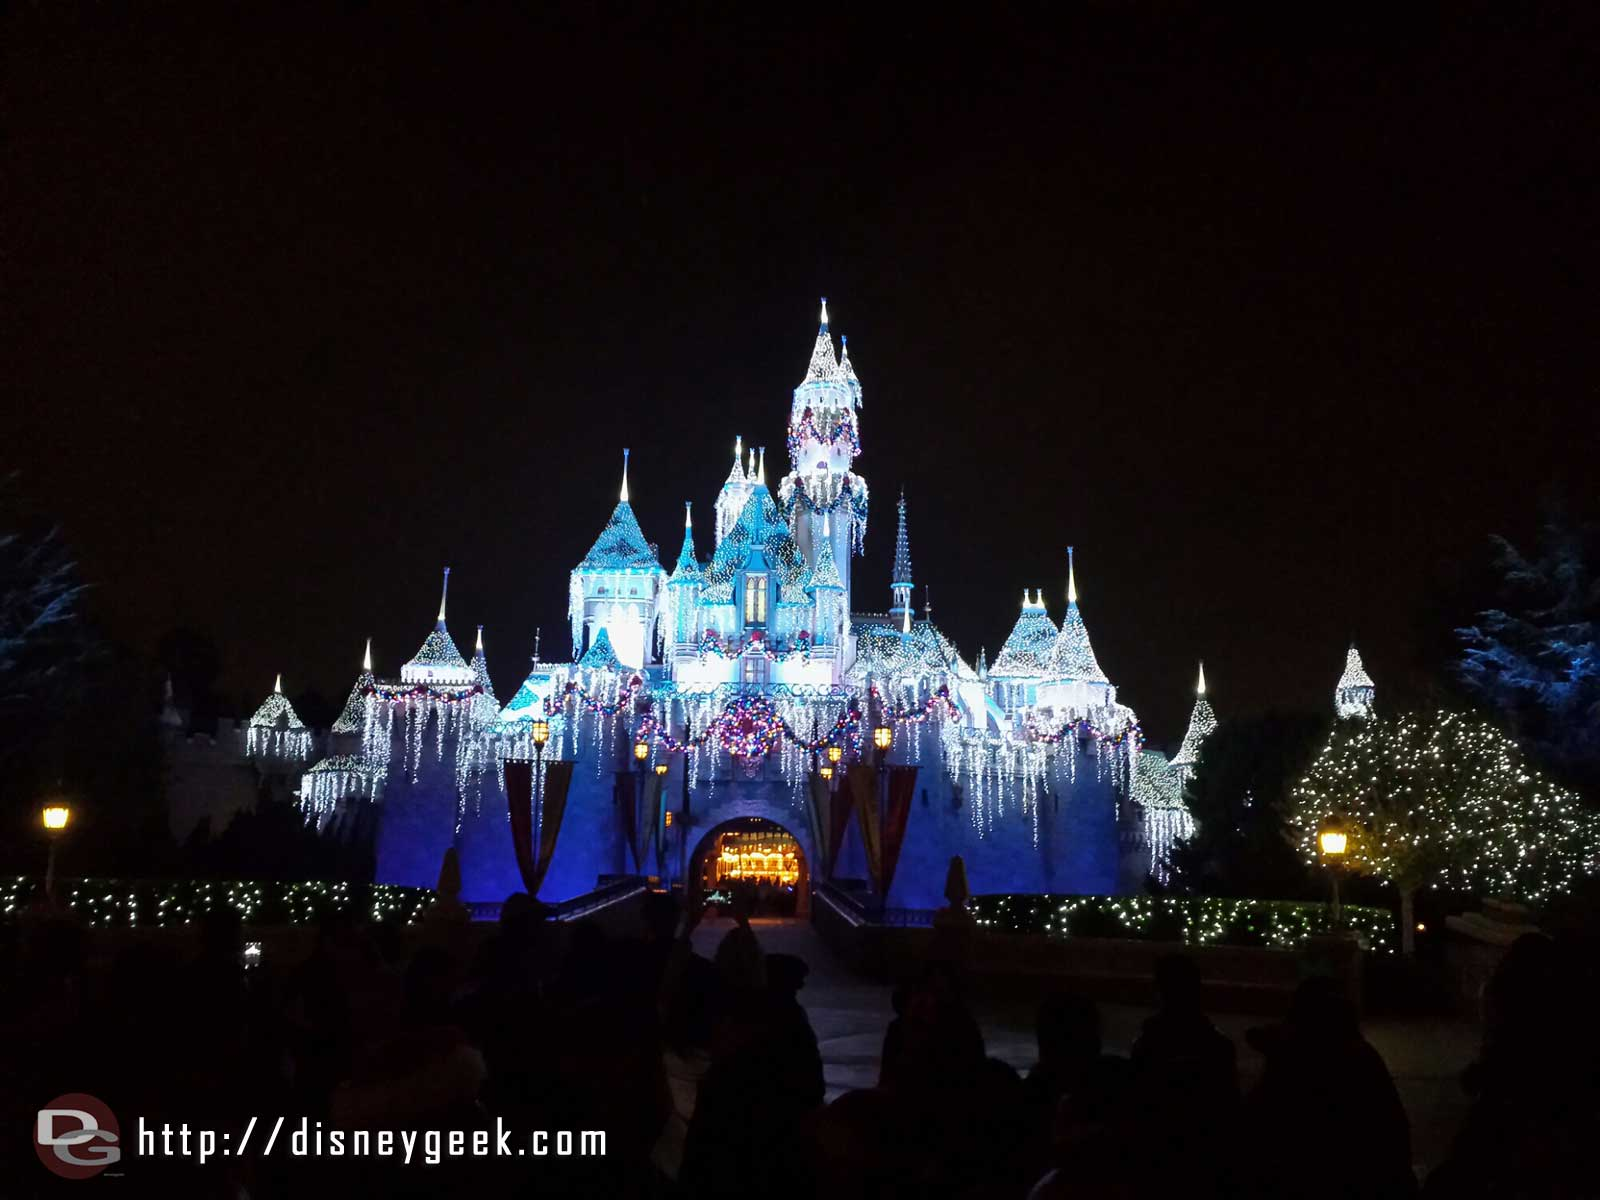 Sleeping Beauty Winter Castle #Disneyland